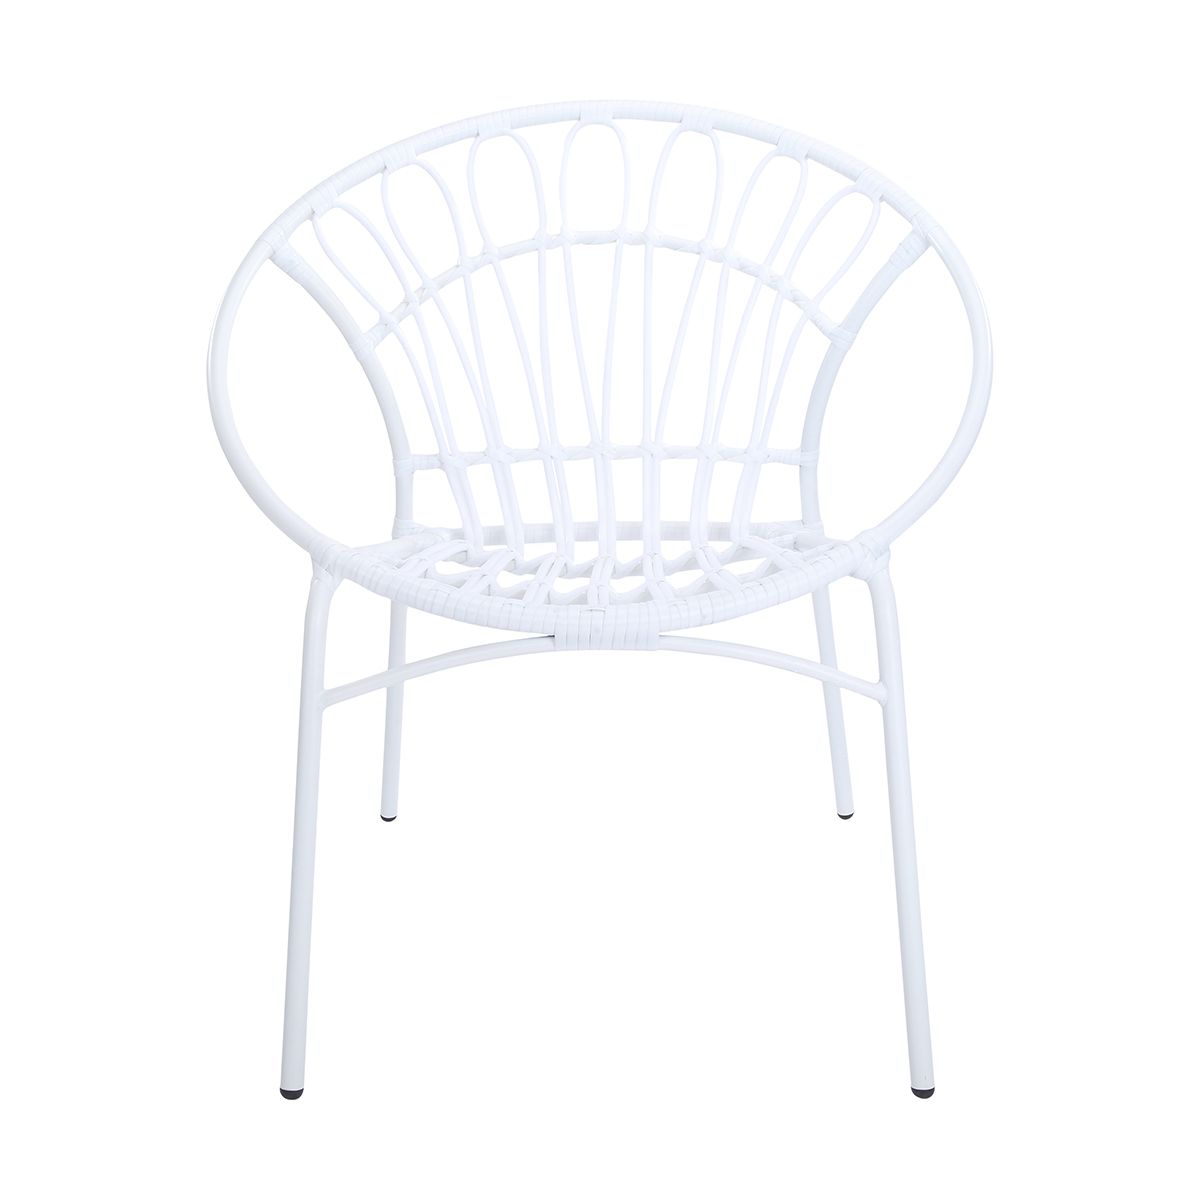 Rattan look chair white kmart